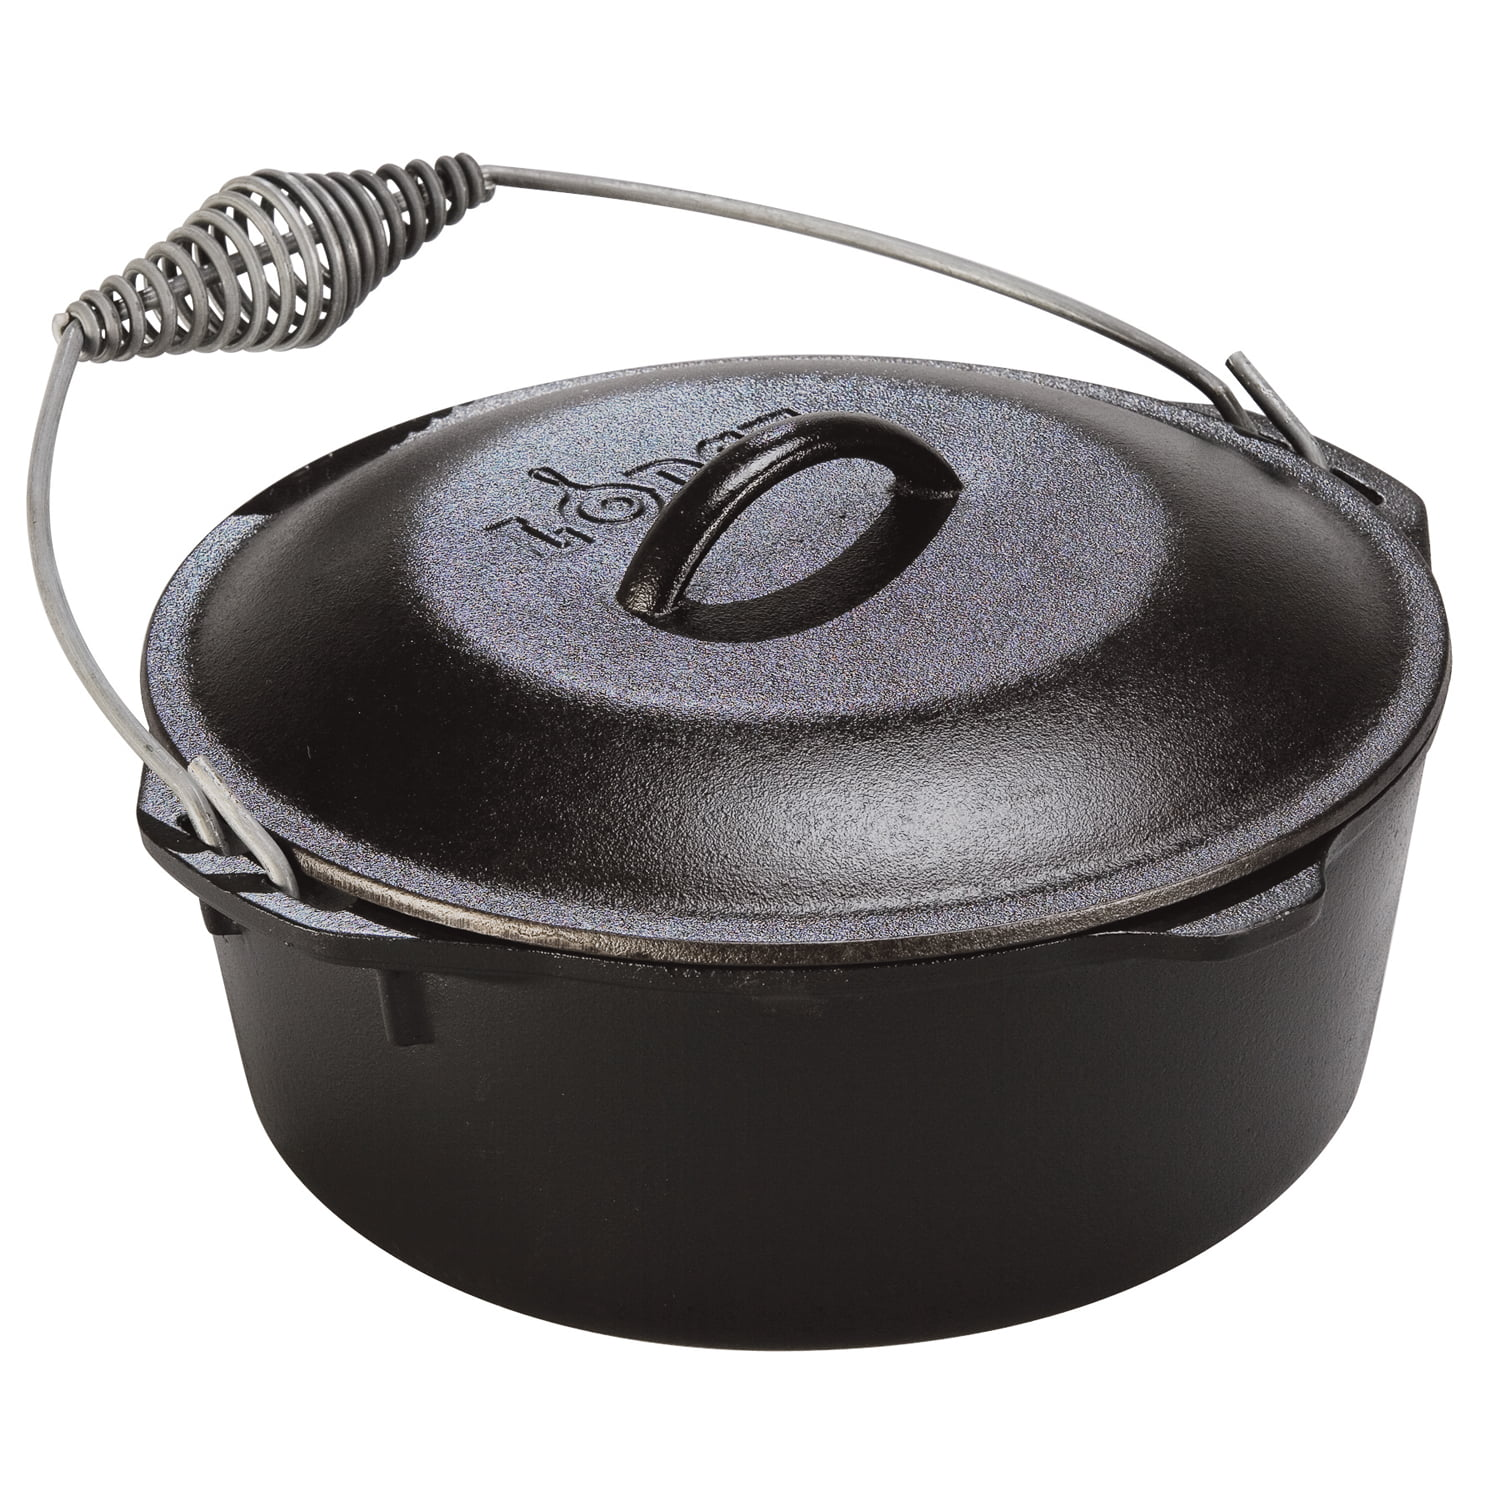 Lodge 7 Quart Cast Iron Dutch Oven With Iron Cover L10DO3 by Lodge Mfg Co